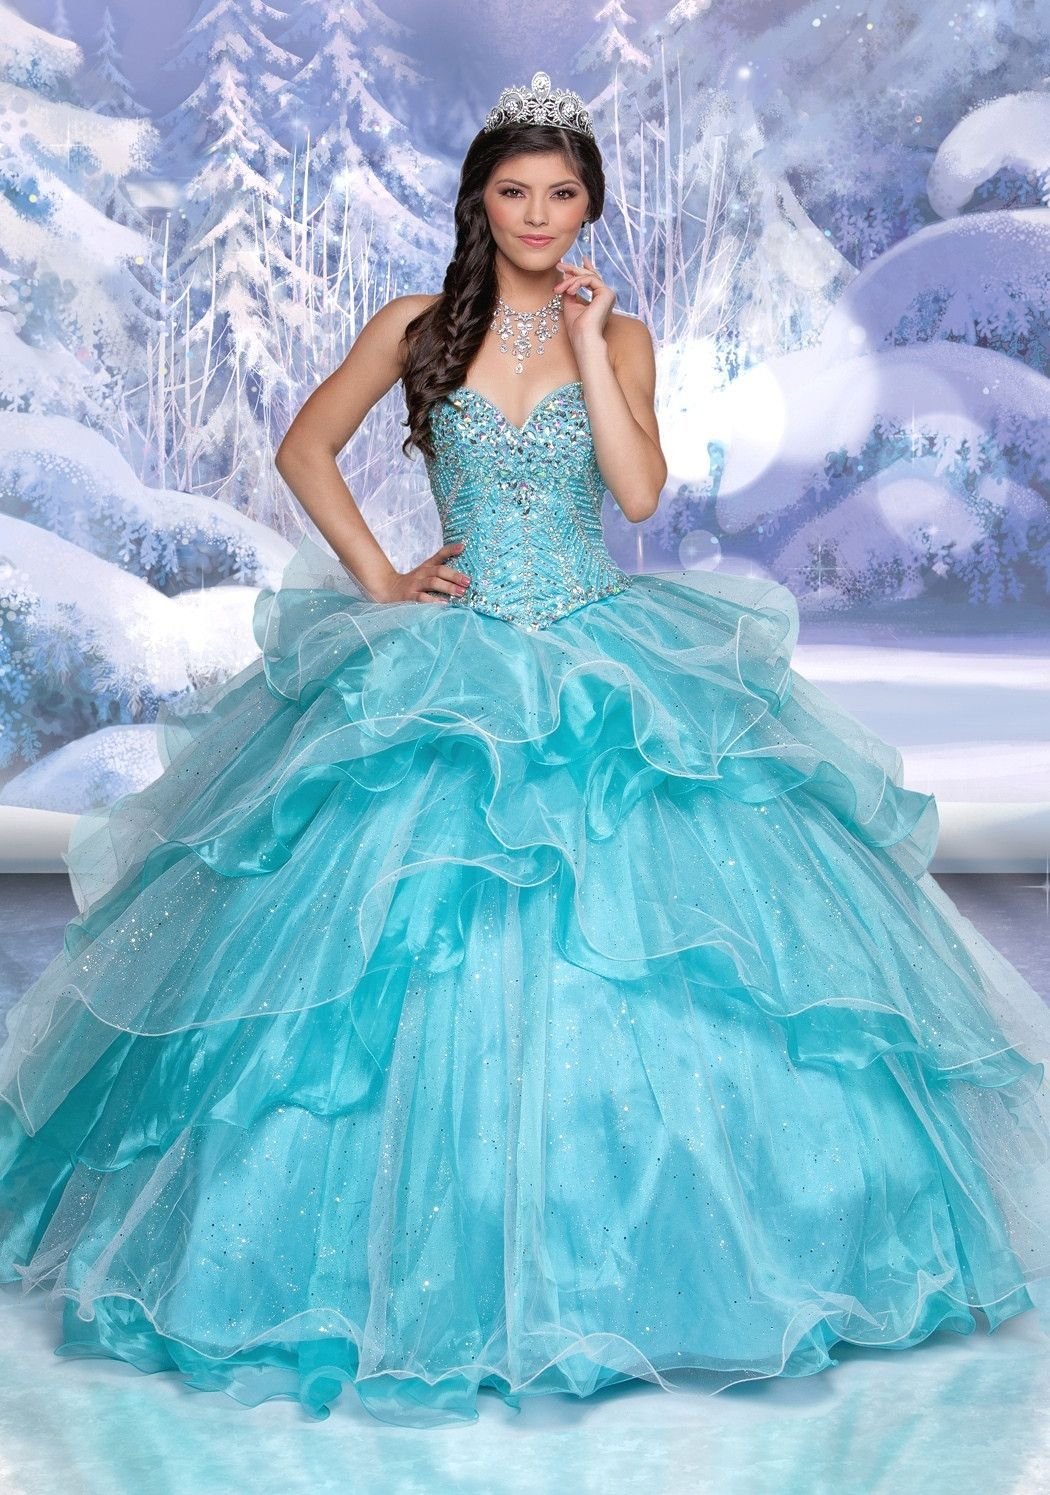 d8eaff6fcf Disney Royal Ball Quinceanera Dress Elsa Style 41097 is made for Sweet 15  girls who want to look like a beautiful Princess on her special day with  its ...